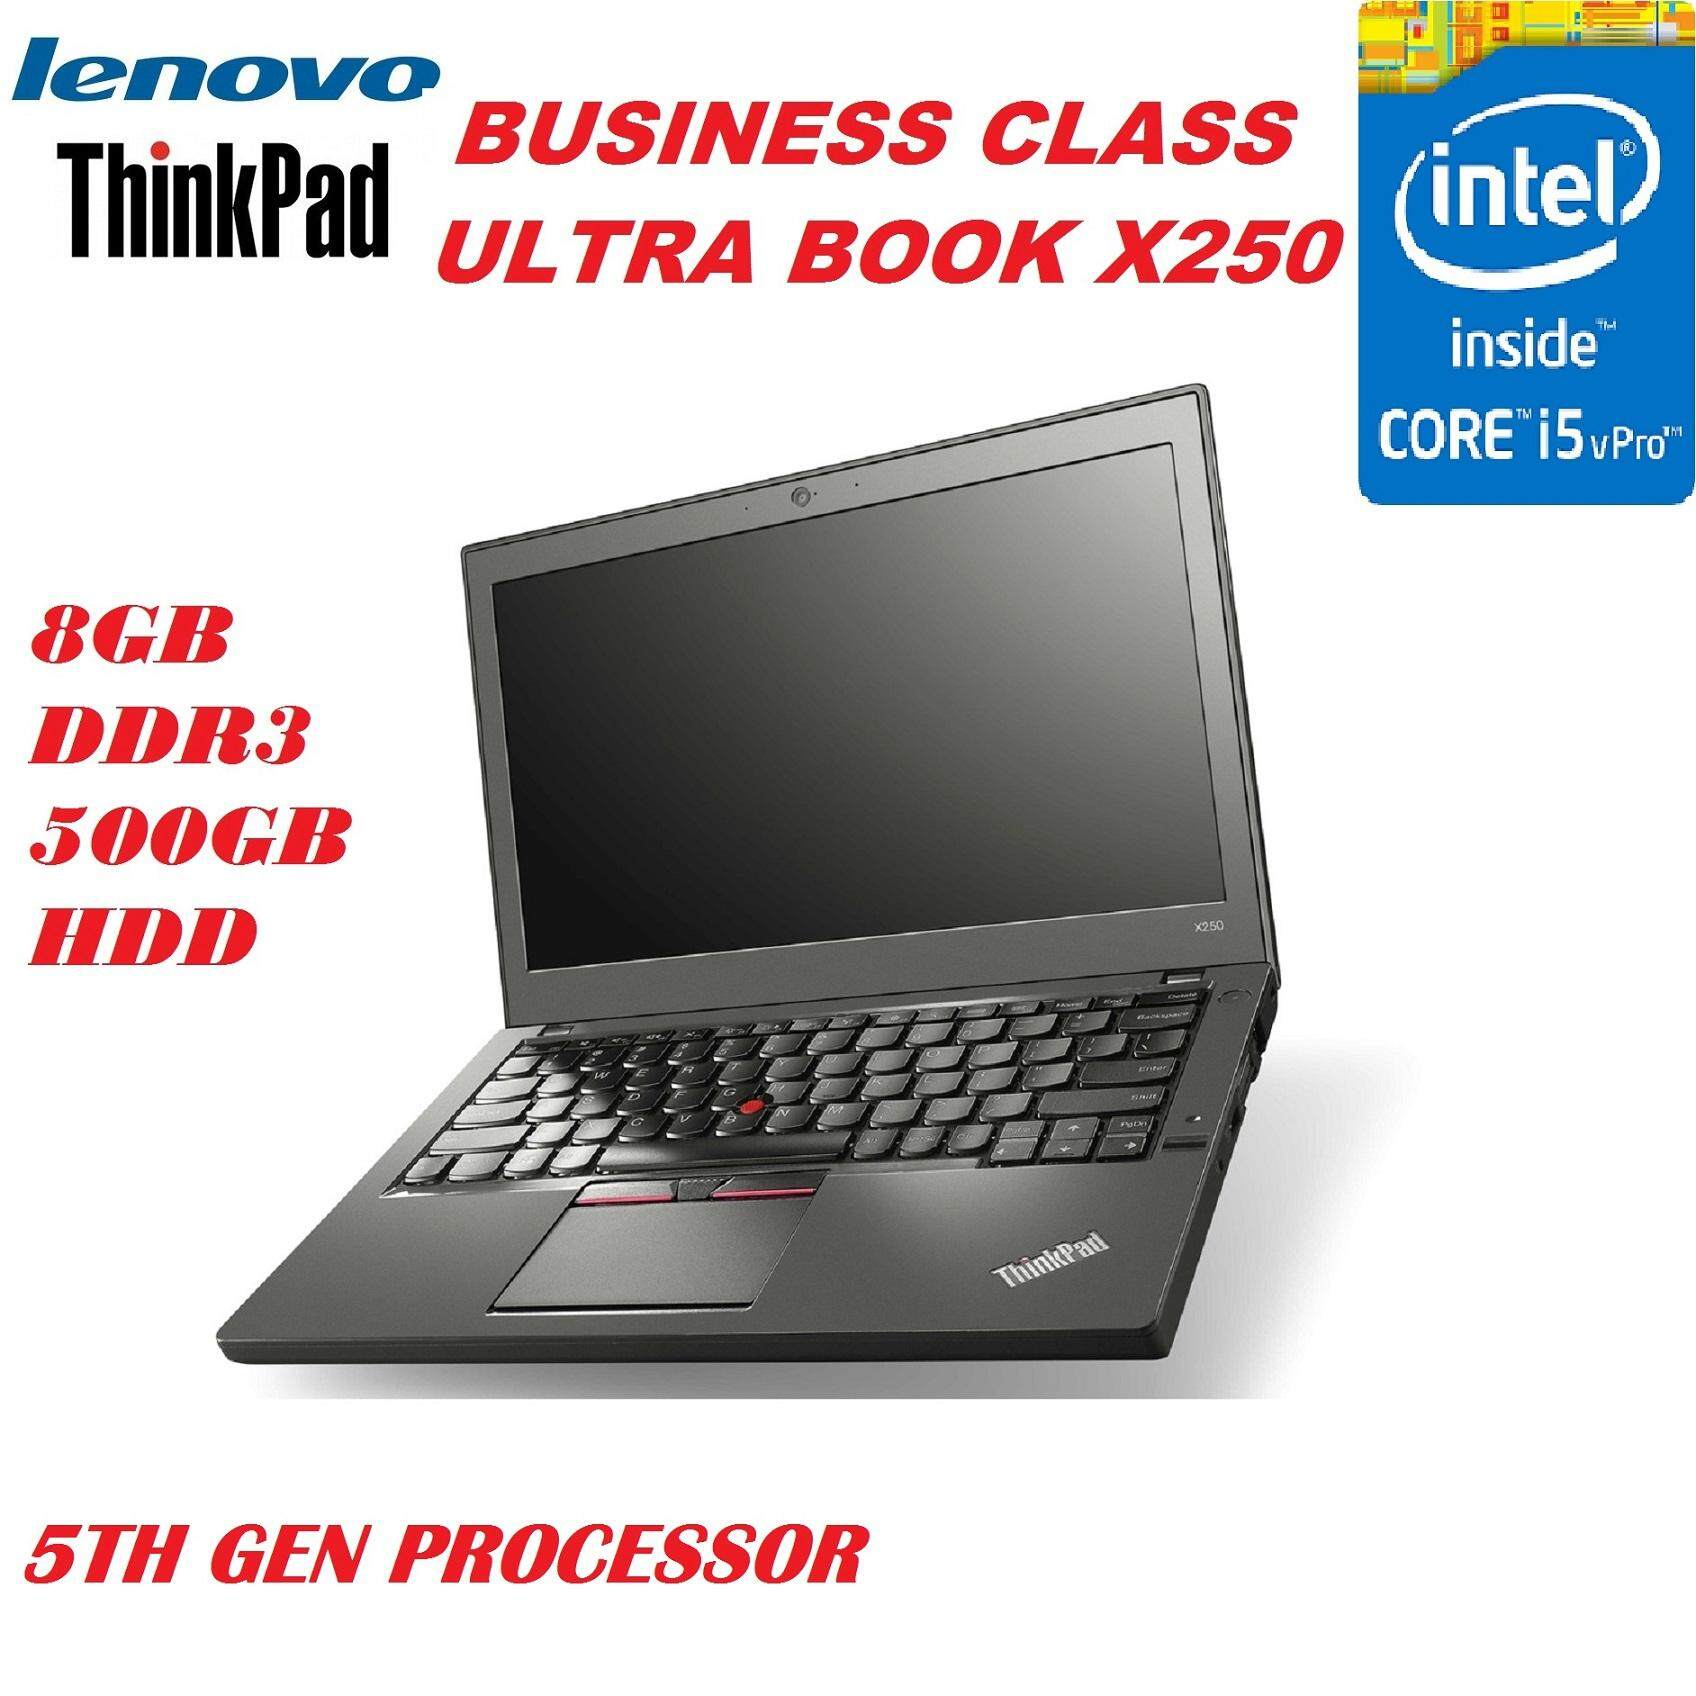 (REFURBISHED)LENOVO THIBNKPAD X250 ULTRABOOK ,INTEL CORE i5 5200U 5TH GEN PROCESSOR/8GB DDR3 RAM/500GB SATA DRIVE ,INTEL HD 5500 GRAPHIC CARD,12.5 LED SCREEN/WIN 8 PRO Malaysia